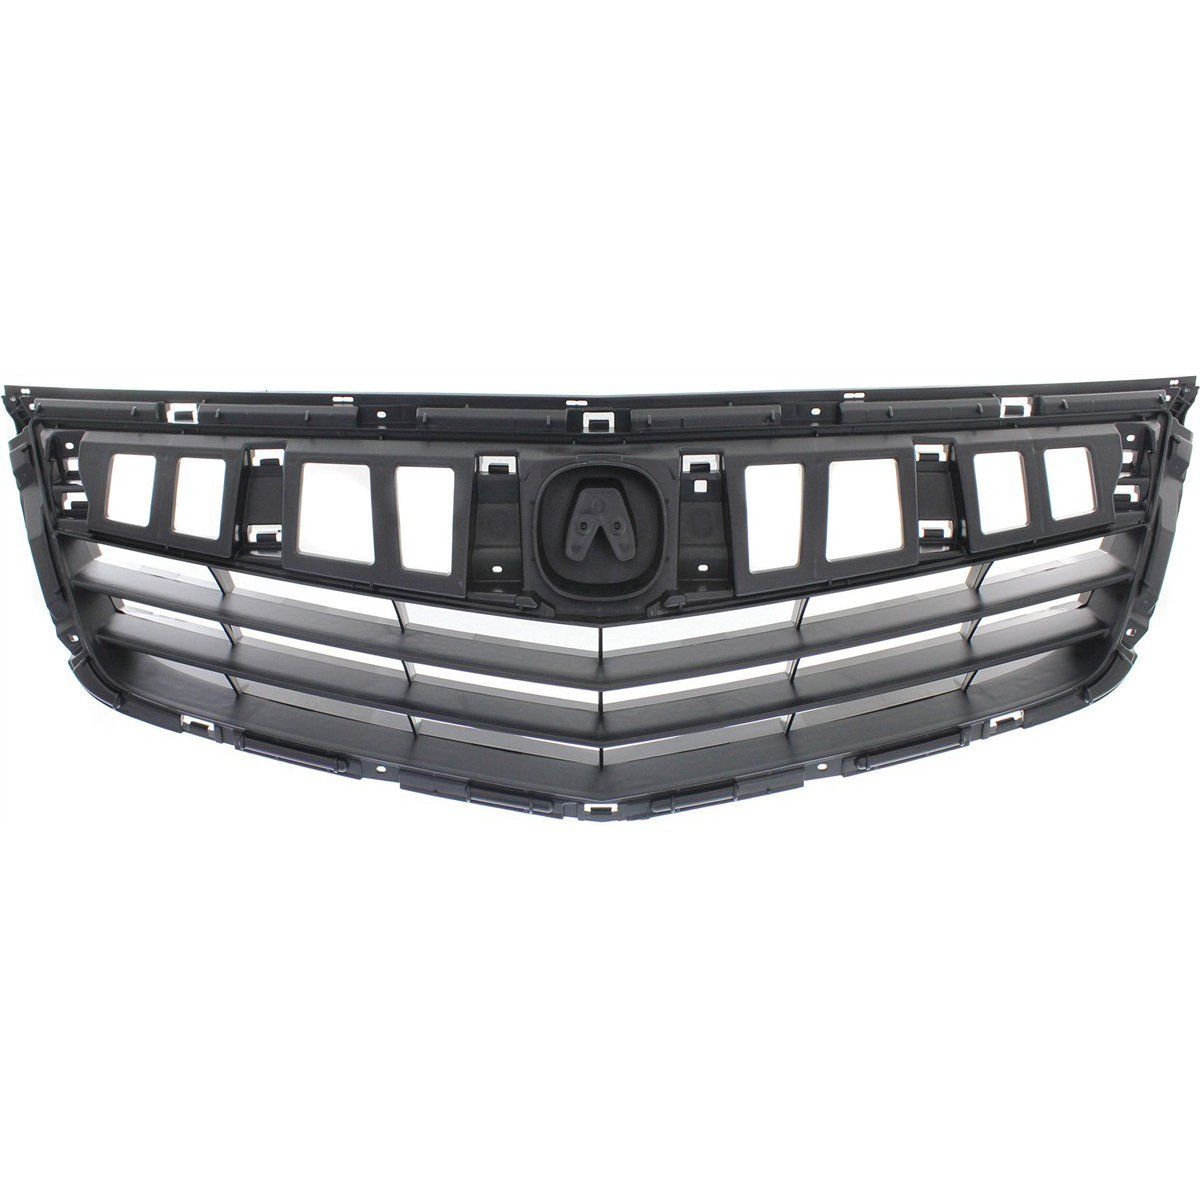 Grille For 2011-2014 Acura TSX Textured Black Plastic